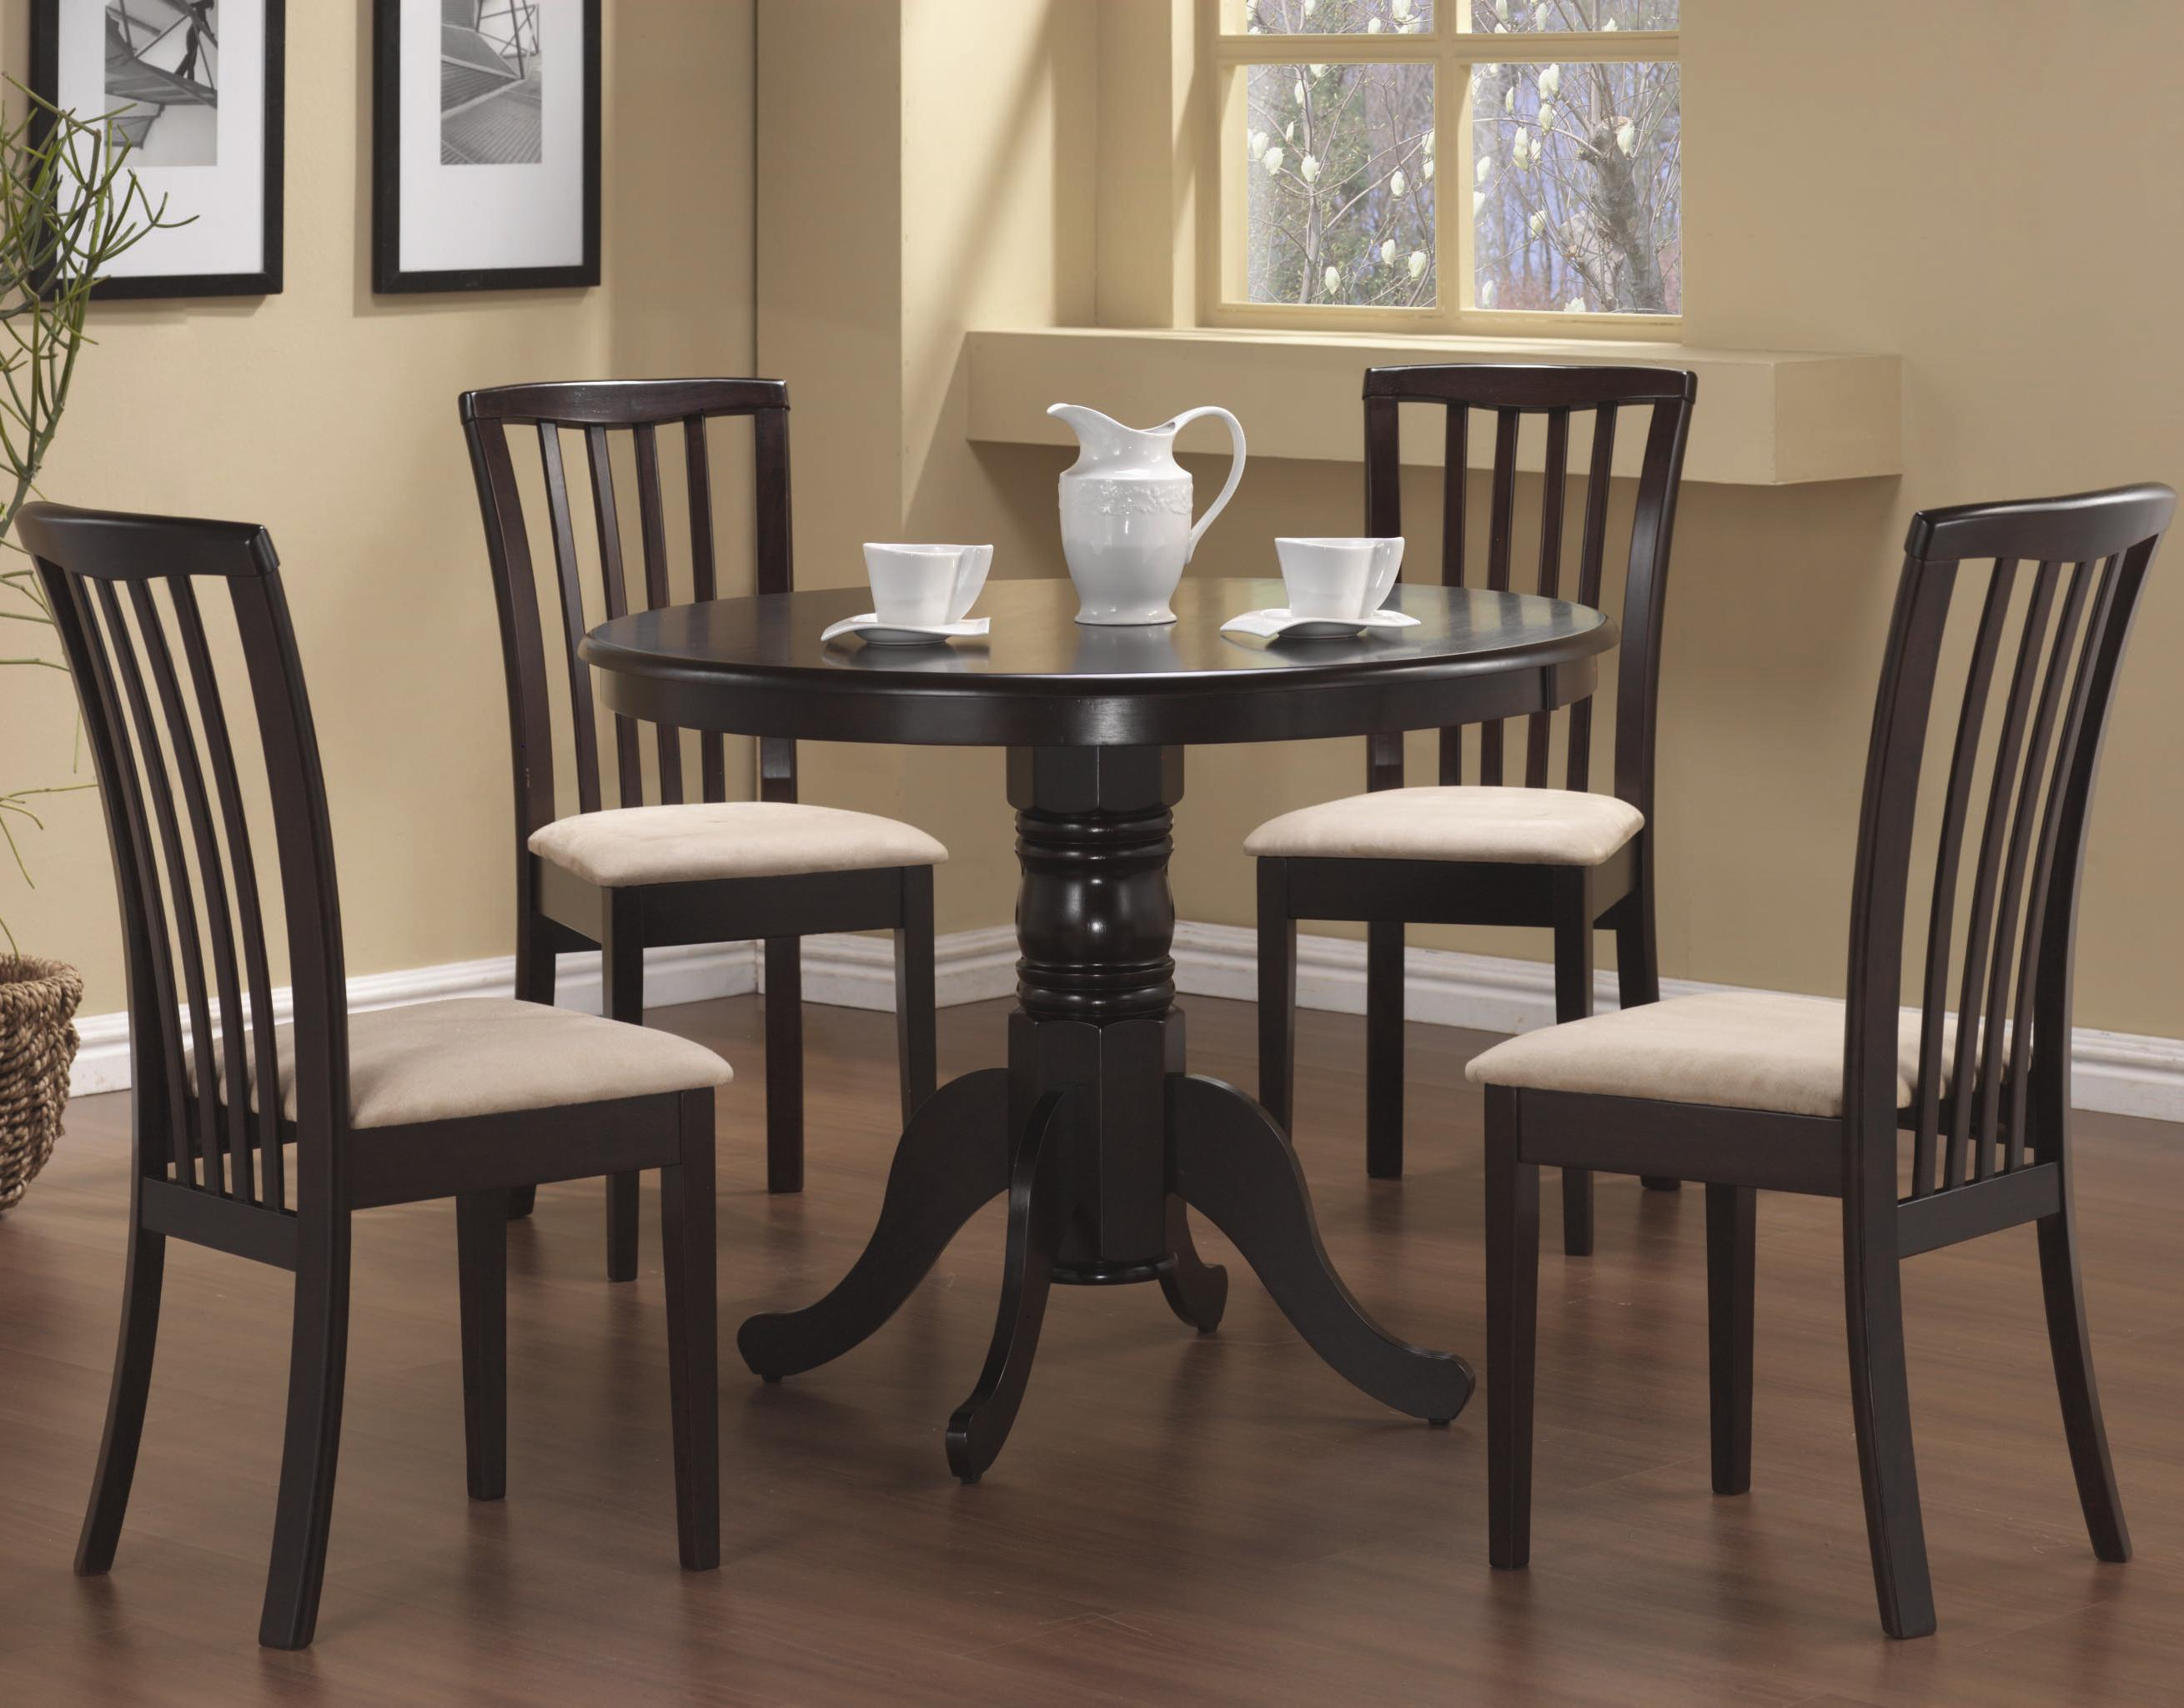 Round Kitchen Table And Chair Set – Home Decor Photos Gallery With Most Recently Released Evellen 5 Piece Solid Wood Dining Sets (Set Of 5) (View 11 of 20)